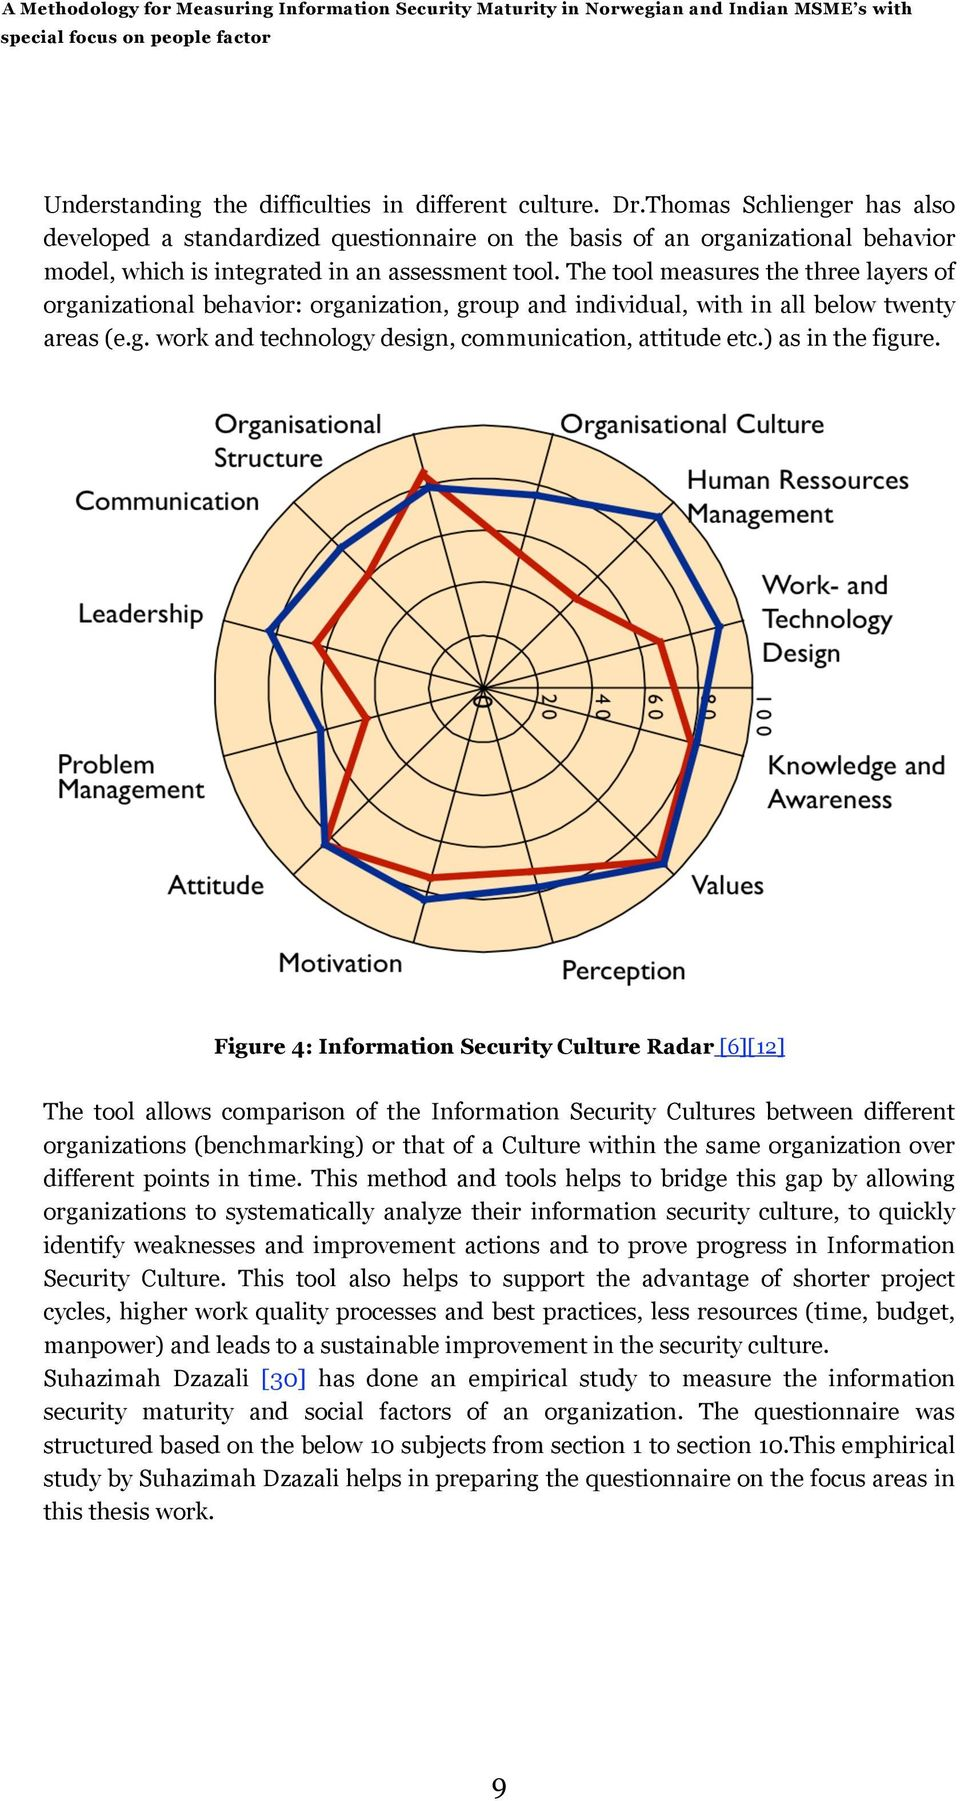 The tool measures the three layers of organizational behavior: organization, group and individual, with in all below twenty areas (e.g. work and technology design, communication, attitude etc.